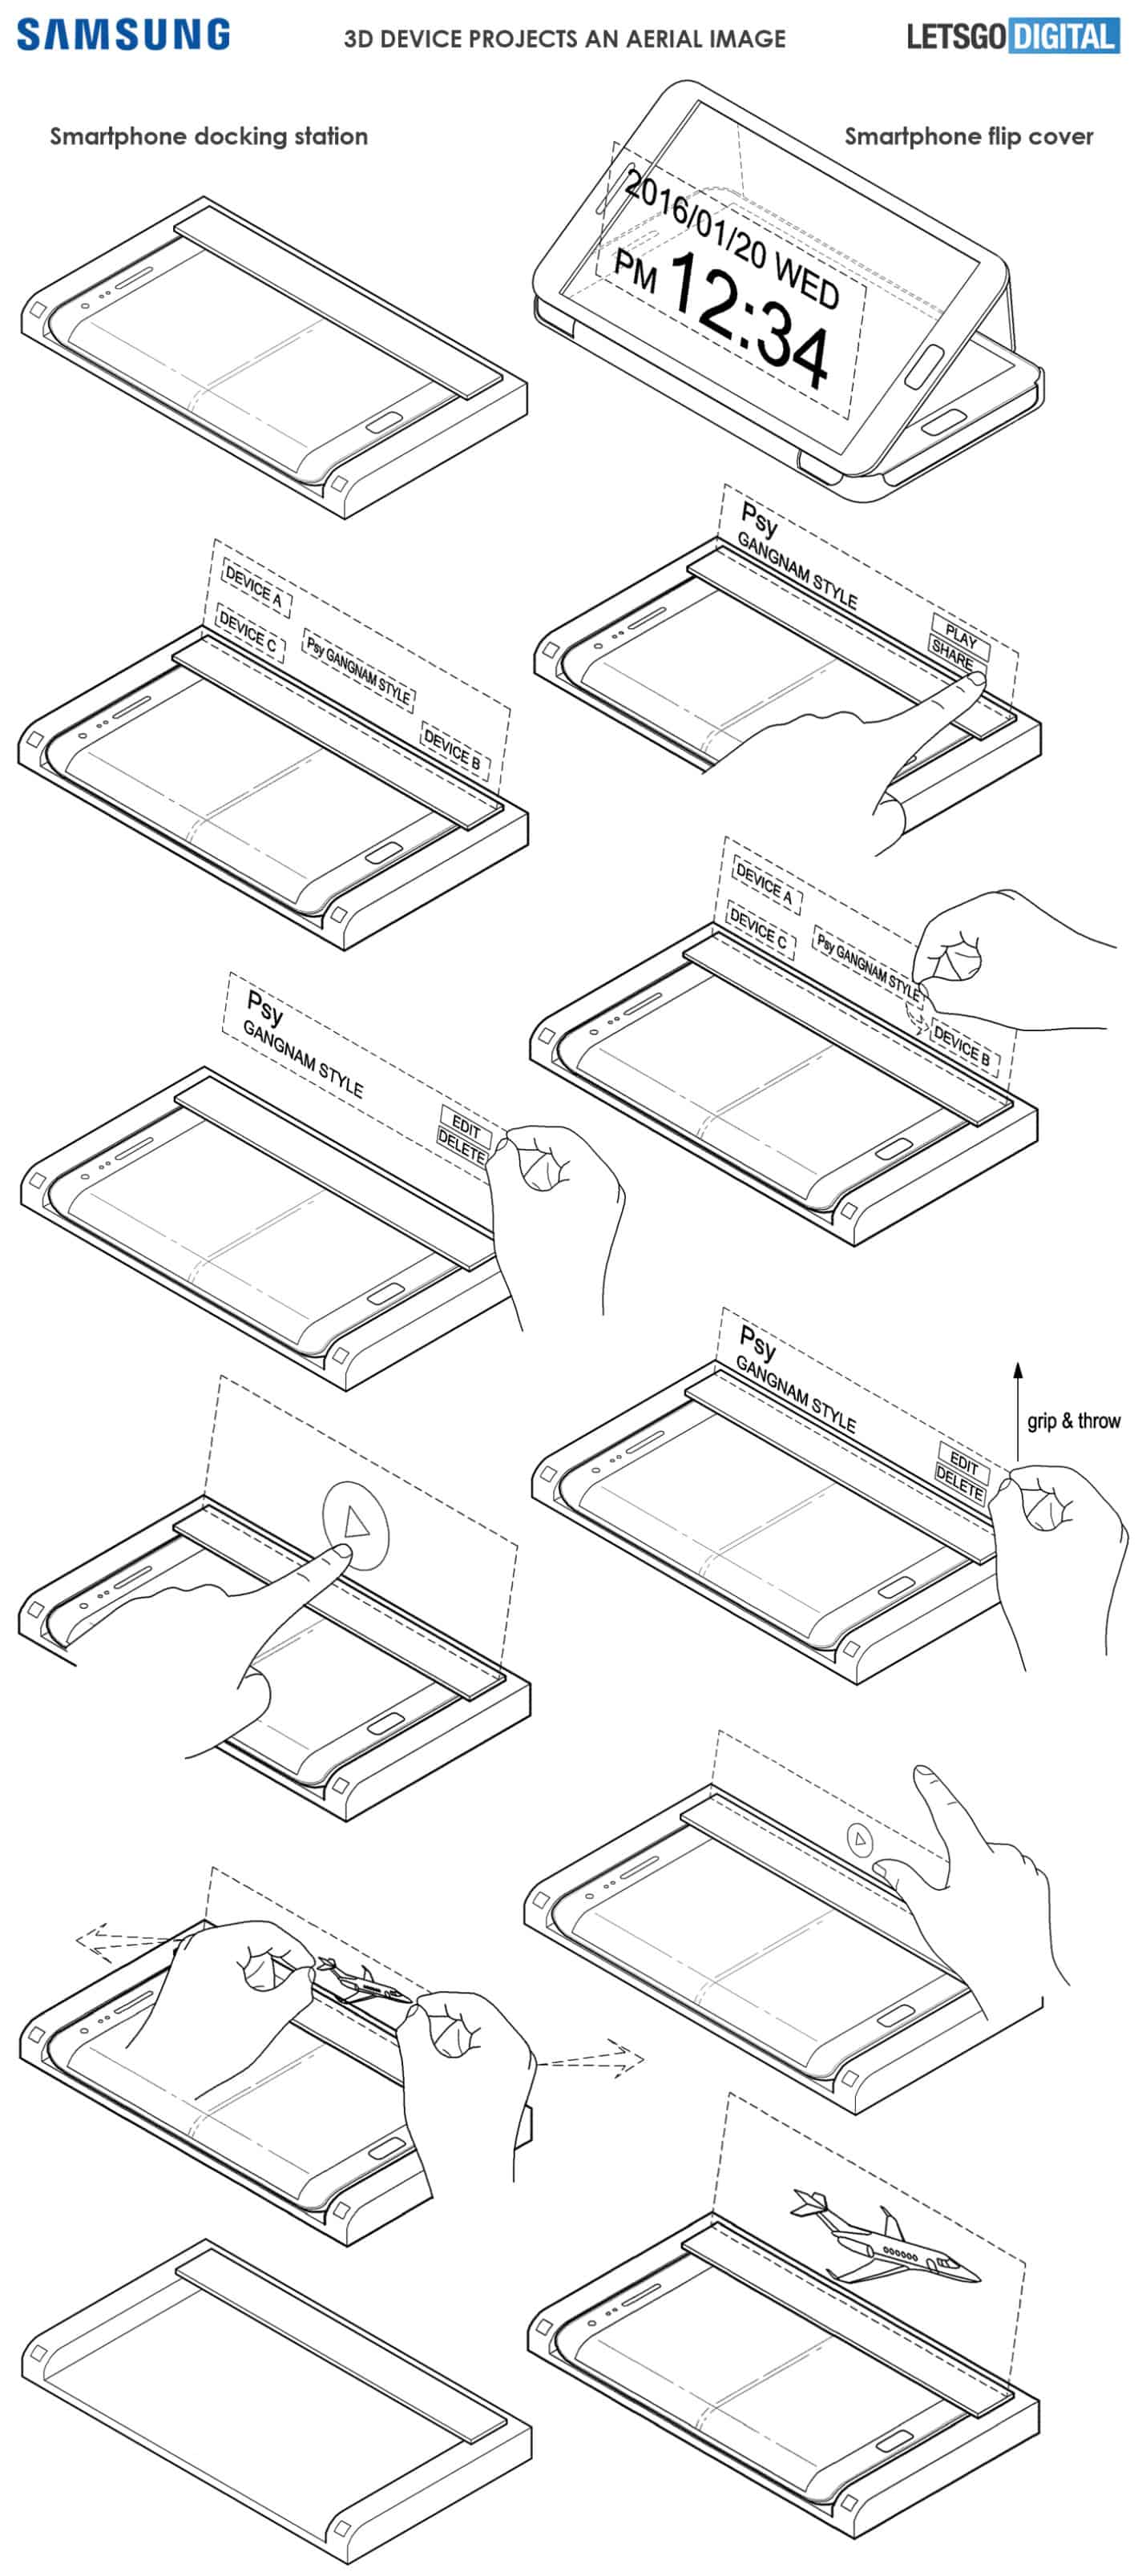 Samsung Hologram Dock patent drawings